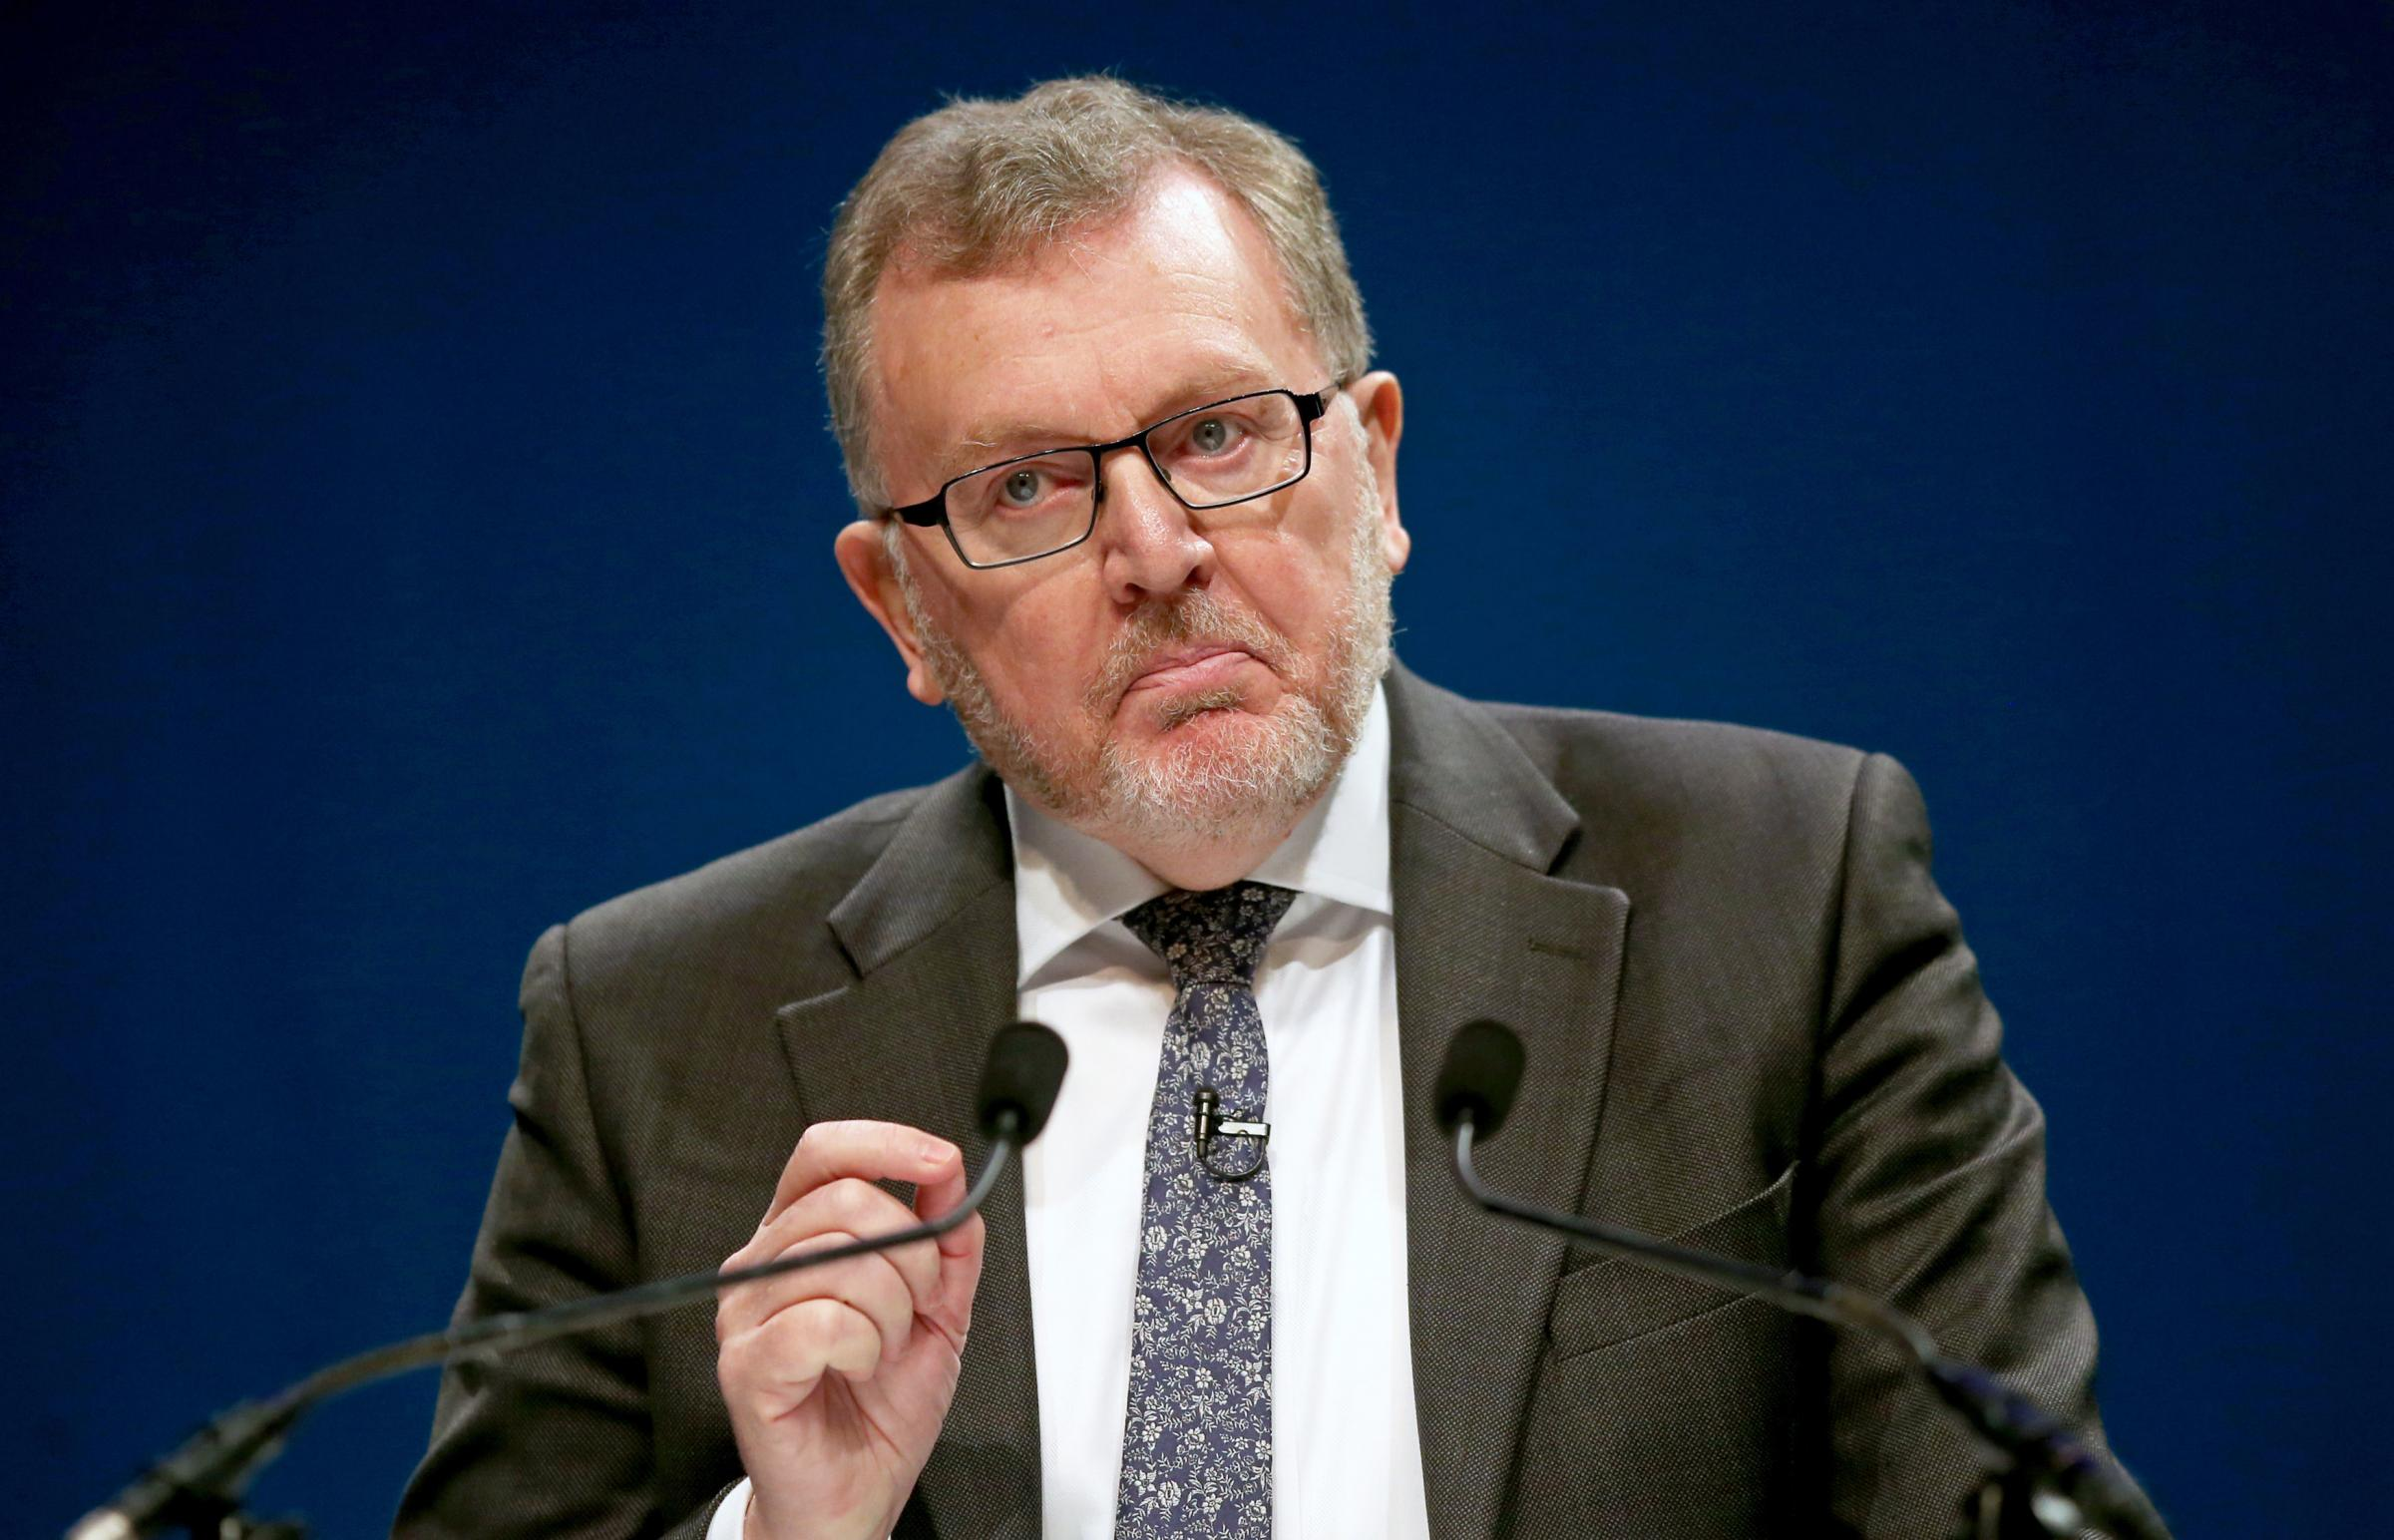 Scotland Secretary David Mundell came under pressure in the Commons